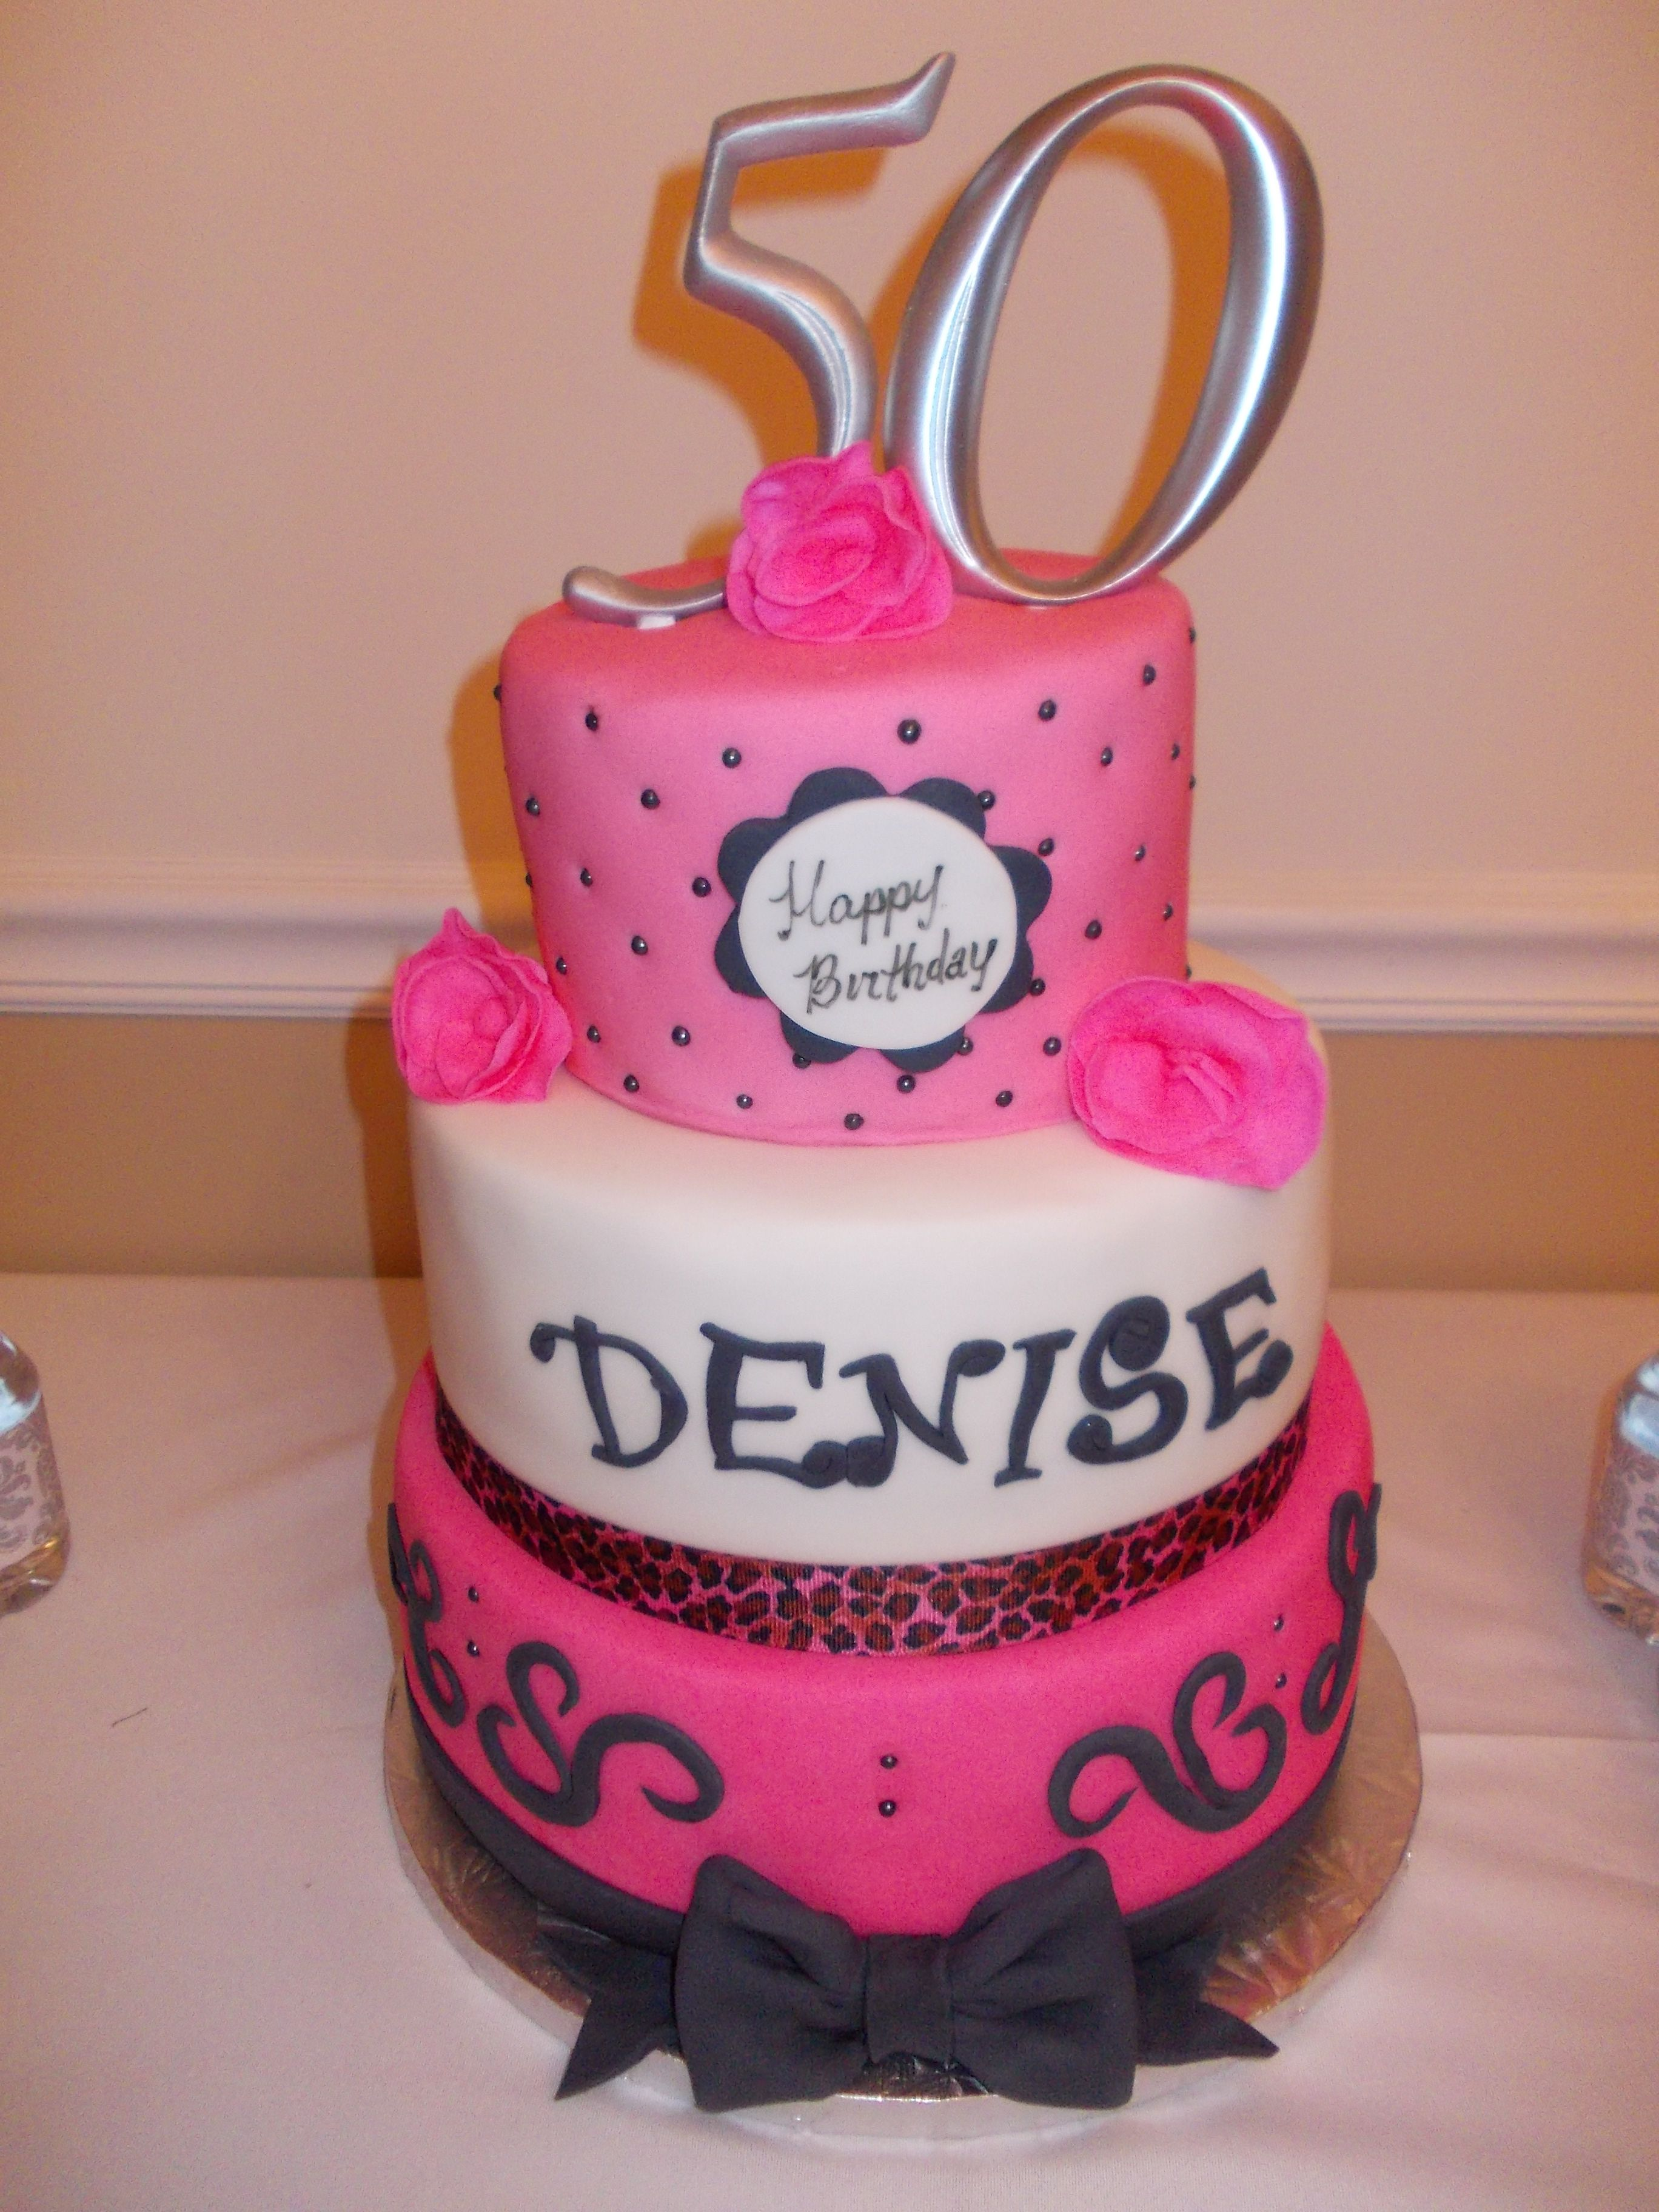 Denise S Bakery Cake Design Akademie : Special made 50th birthday cake for Denise. Birthday ...